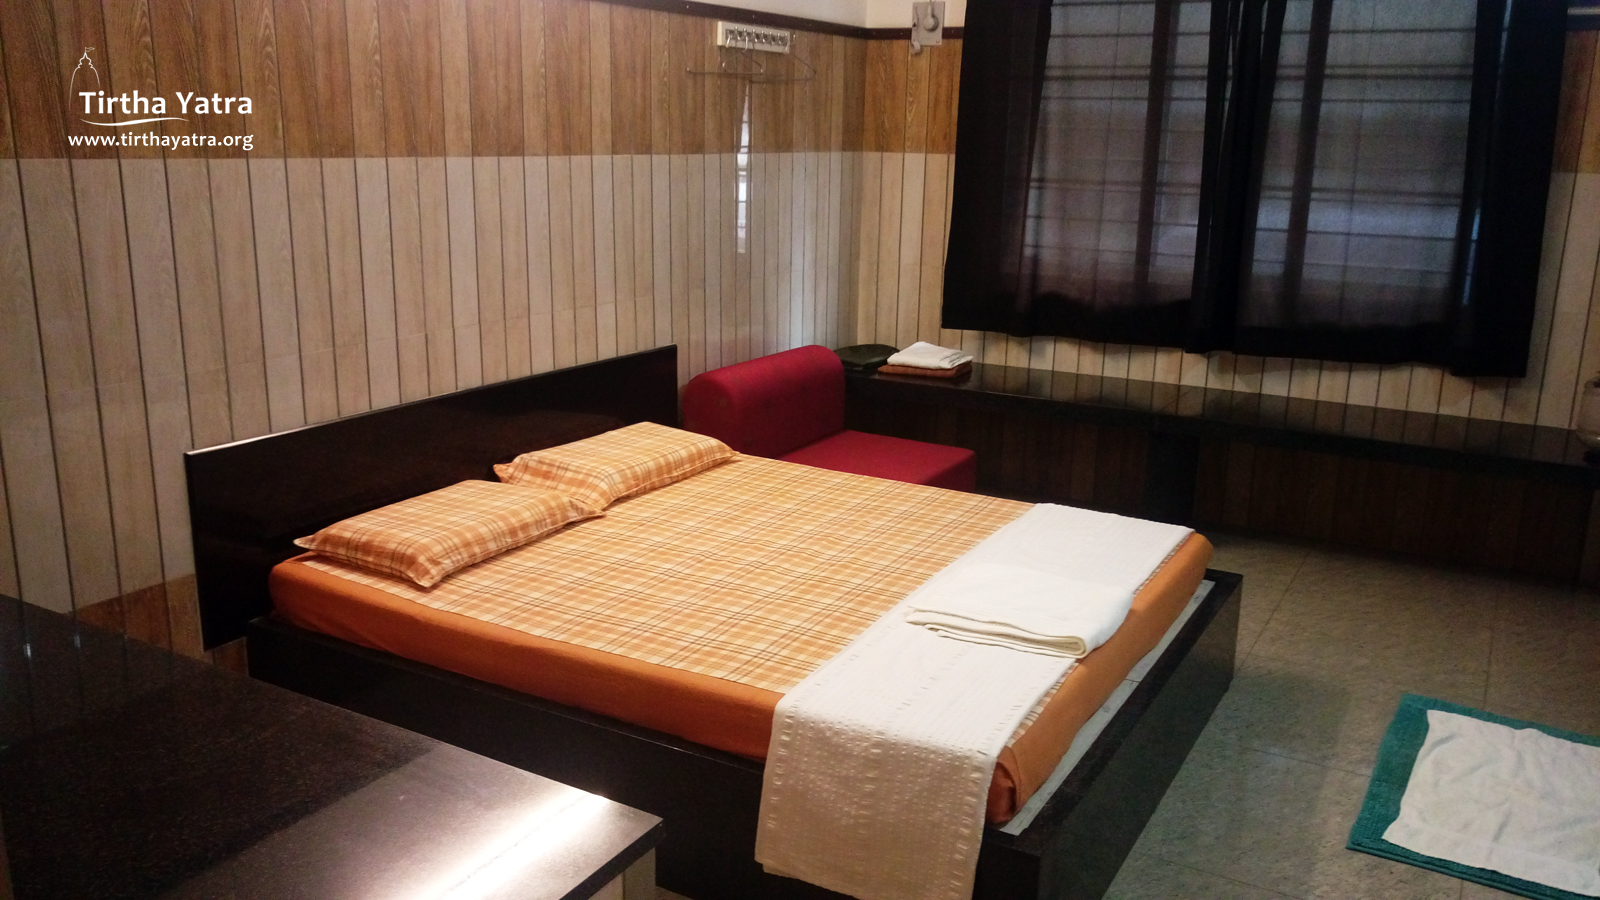 Our guest house in Srirangam